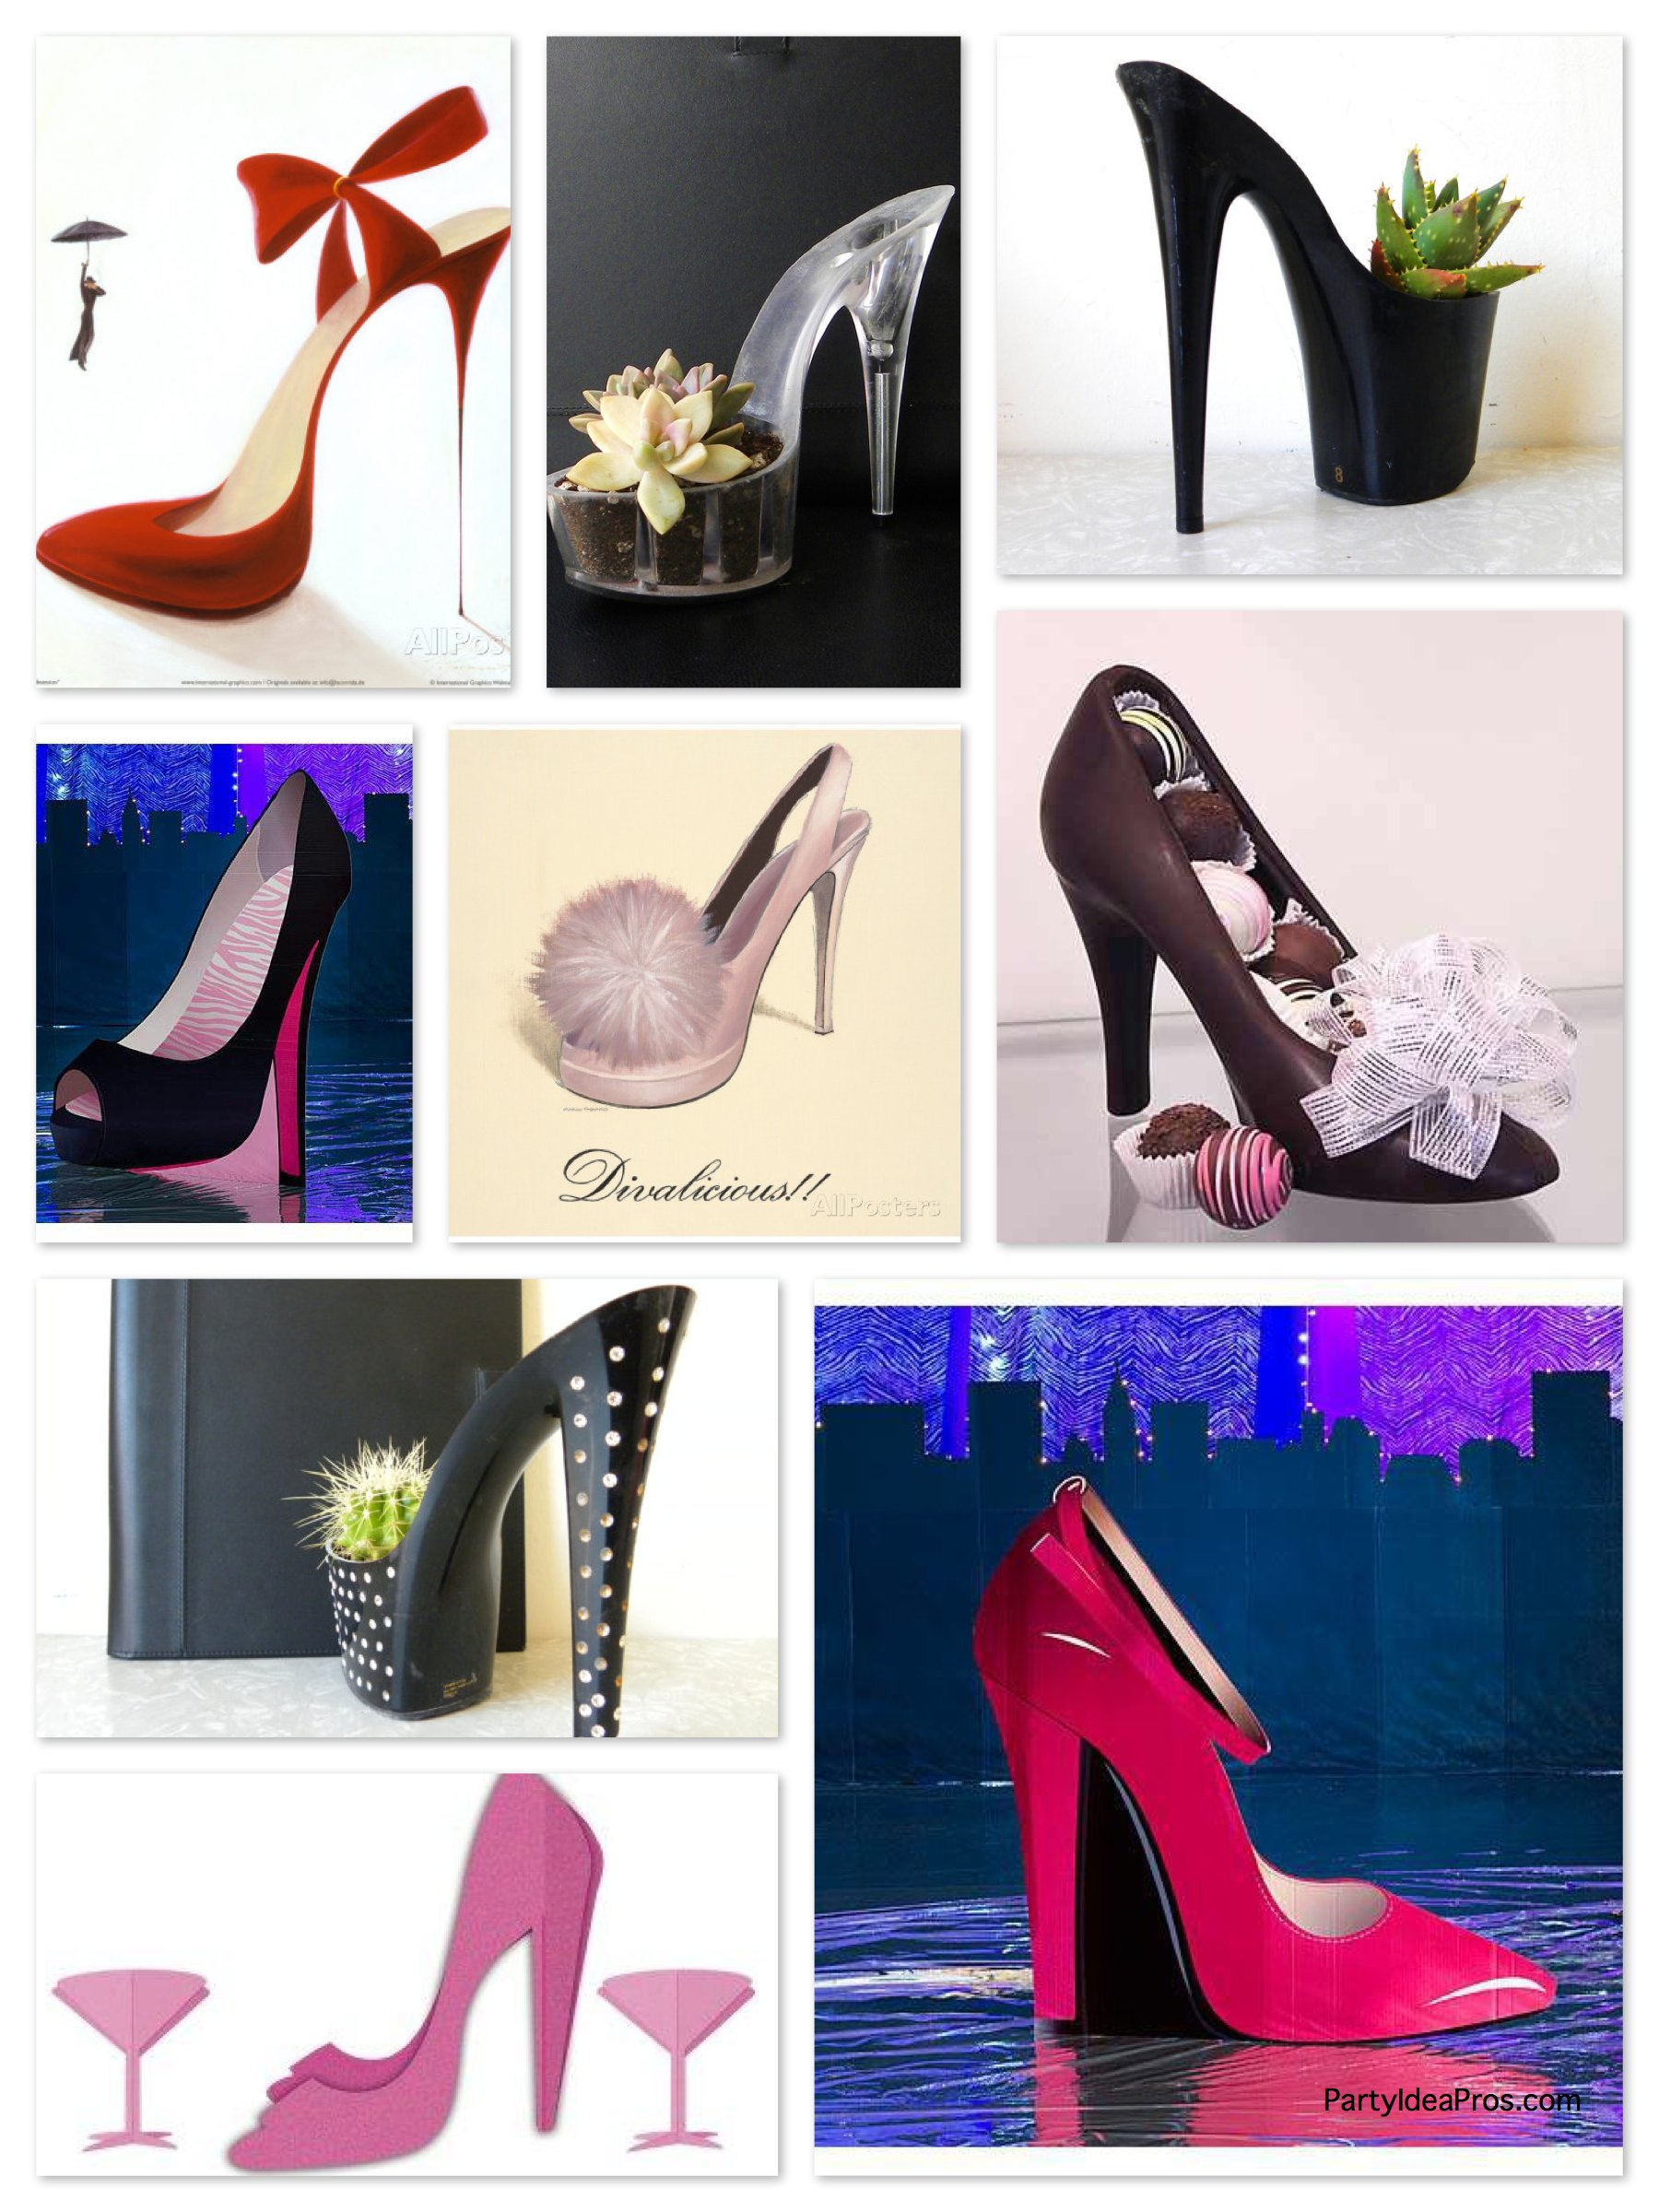 High Heel Shoe Party Decor & Centerpiece Ideas